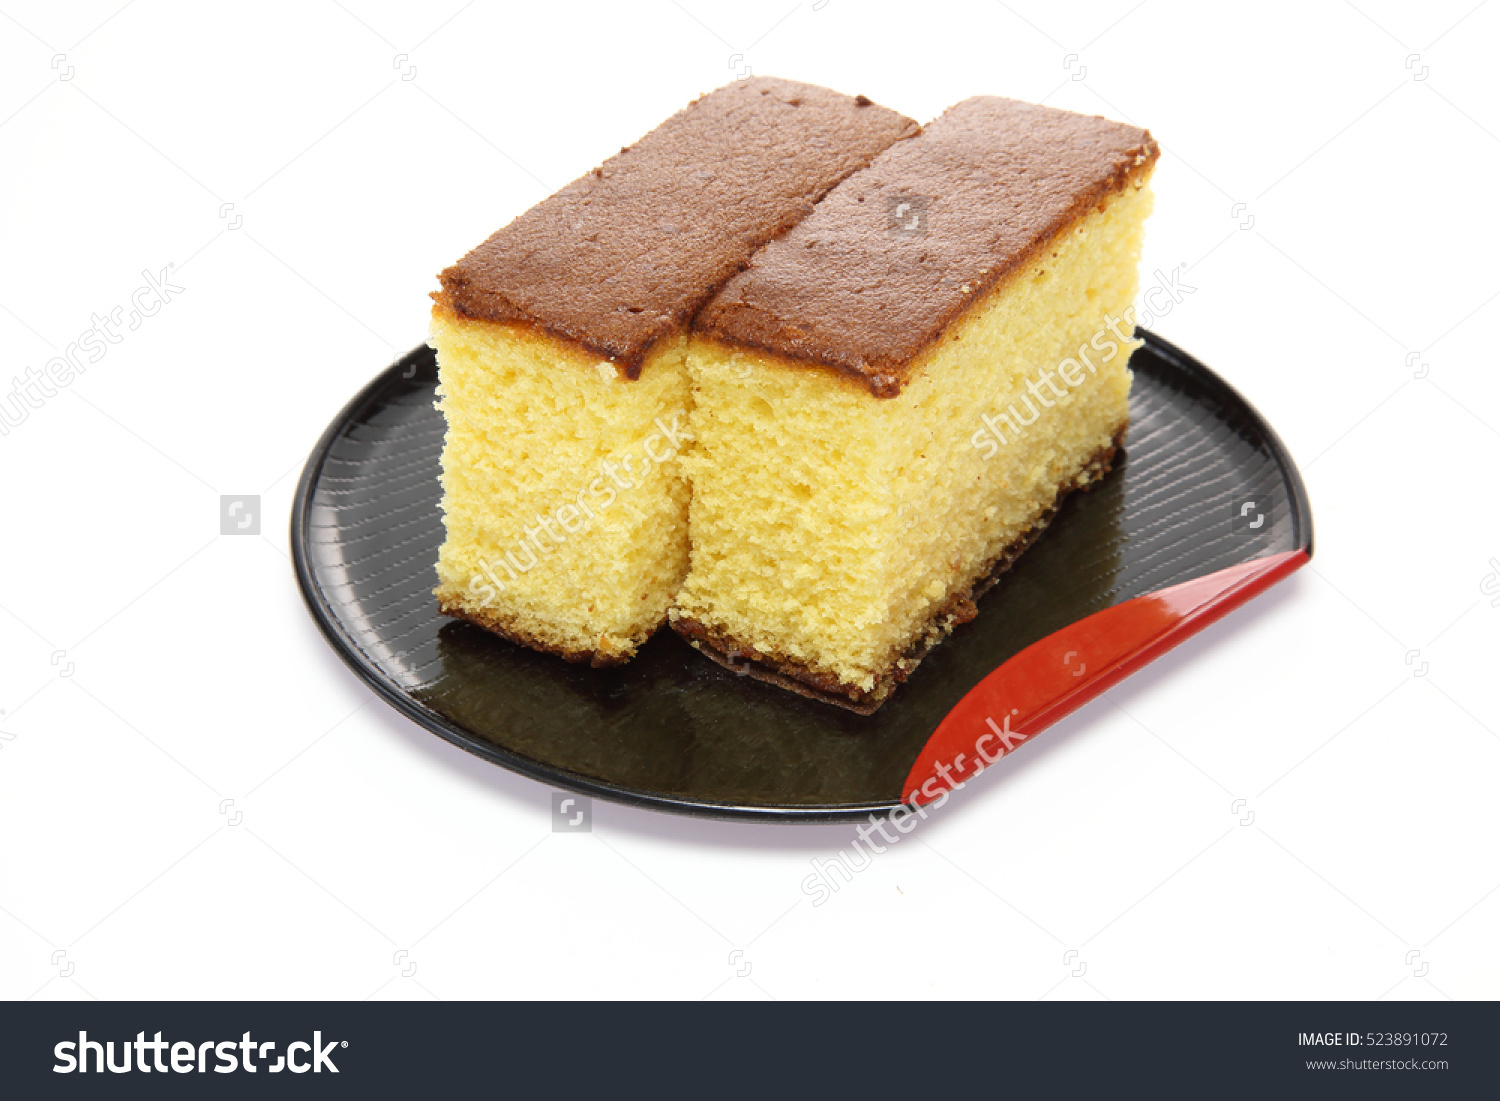 Japanese Sponge Cake Stock Photo 523891072.